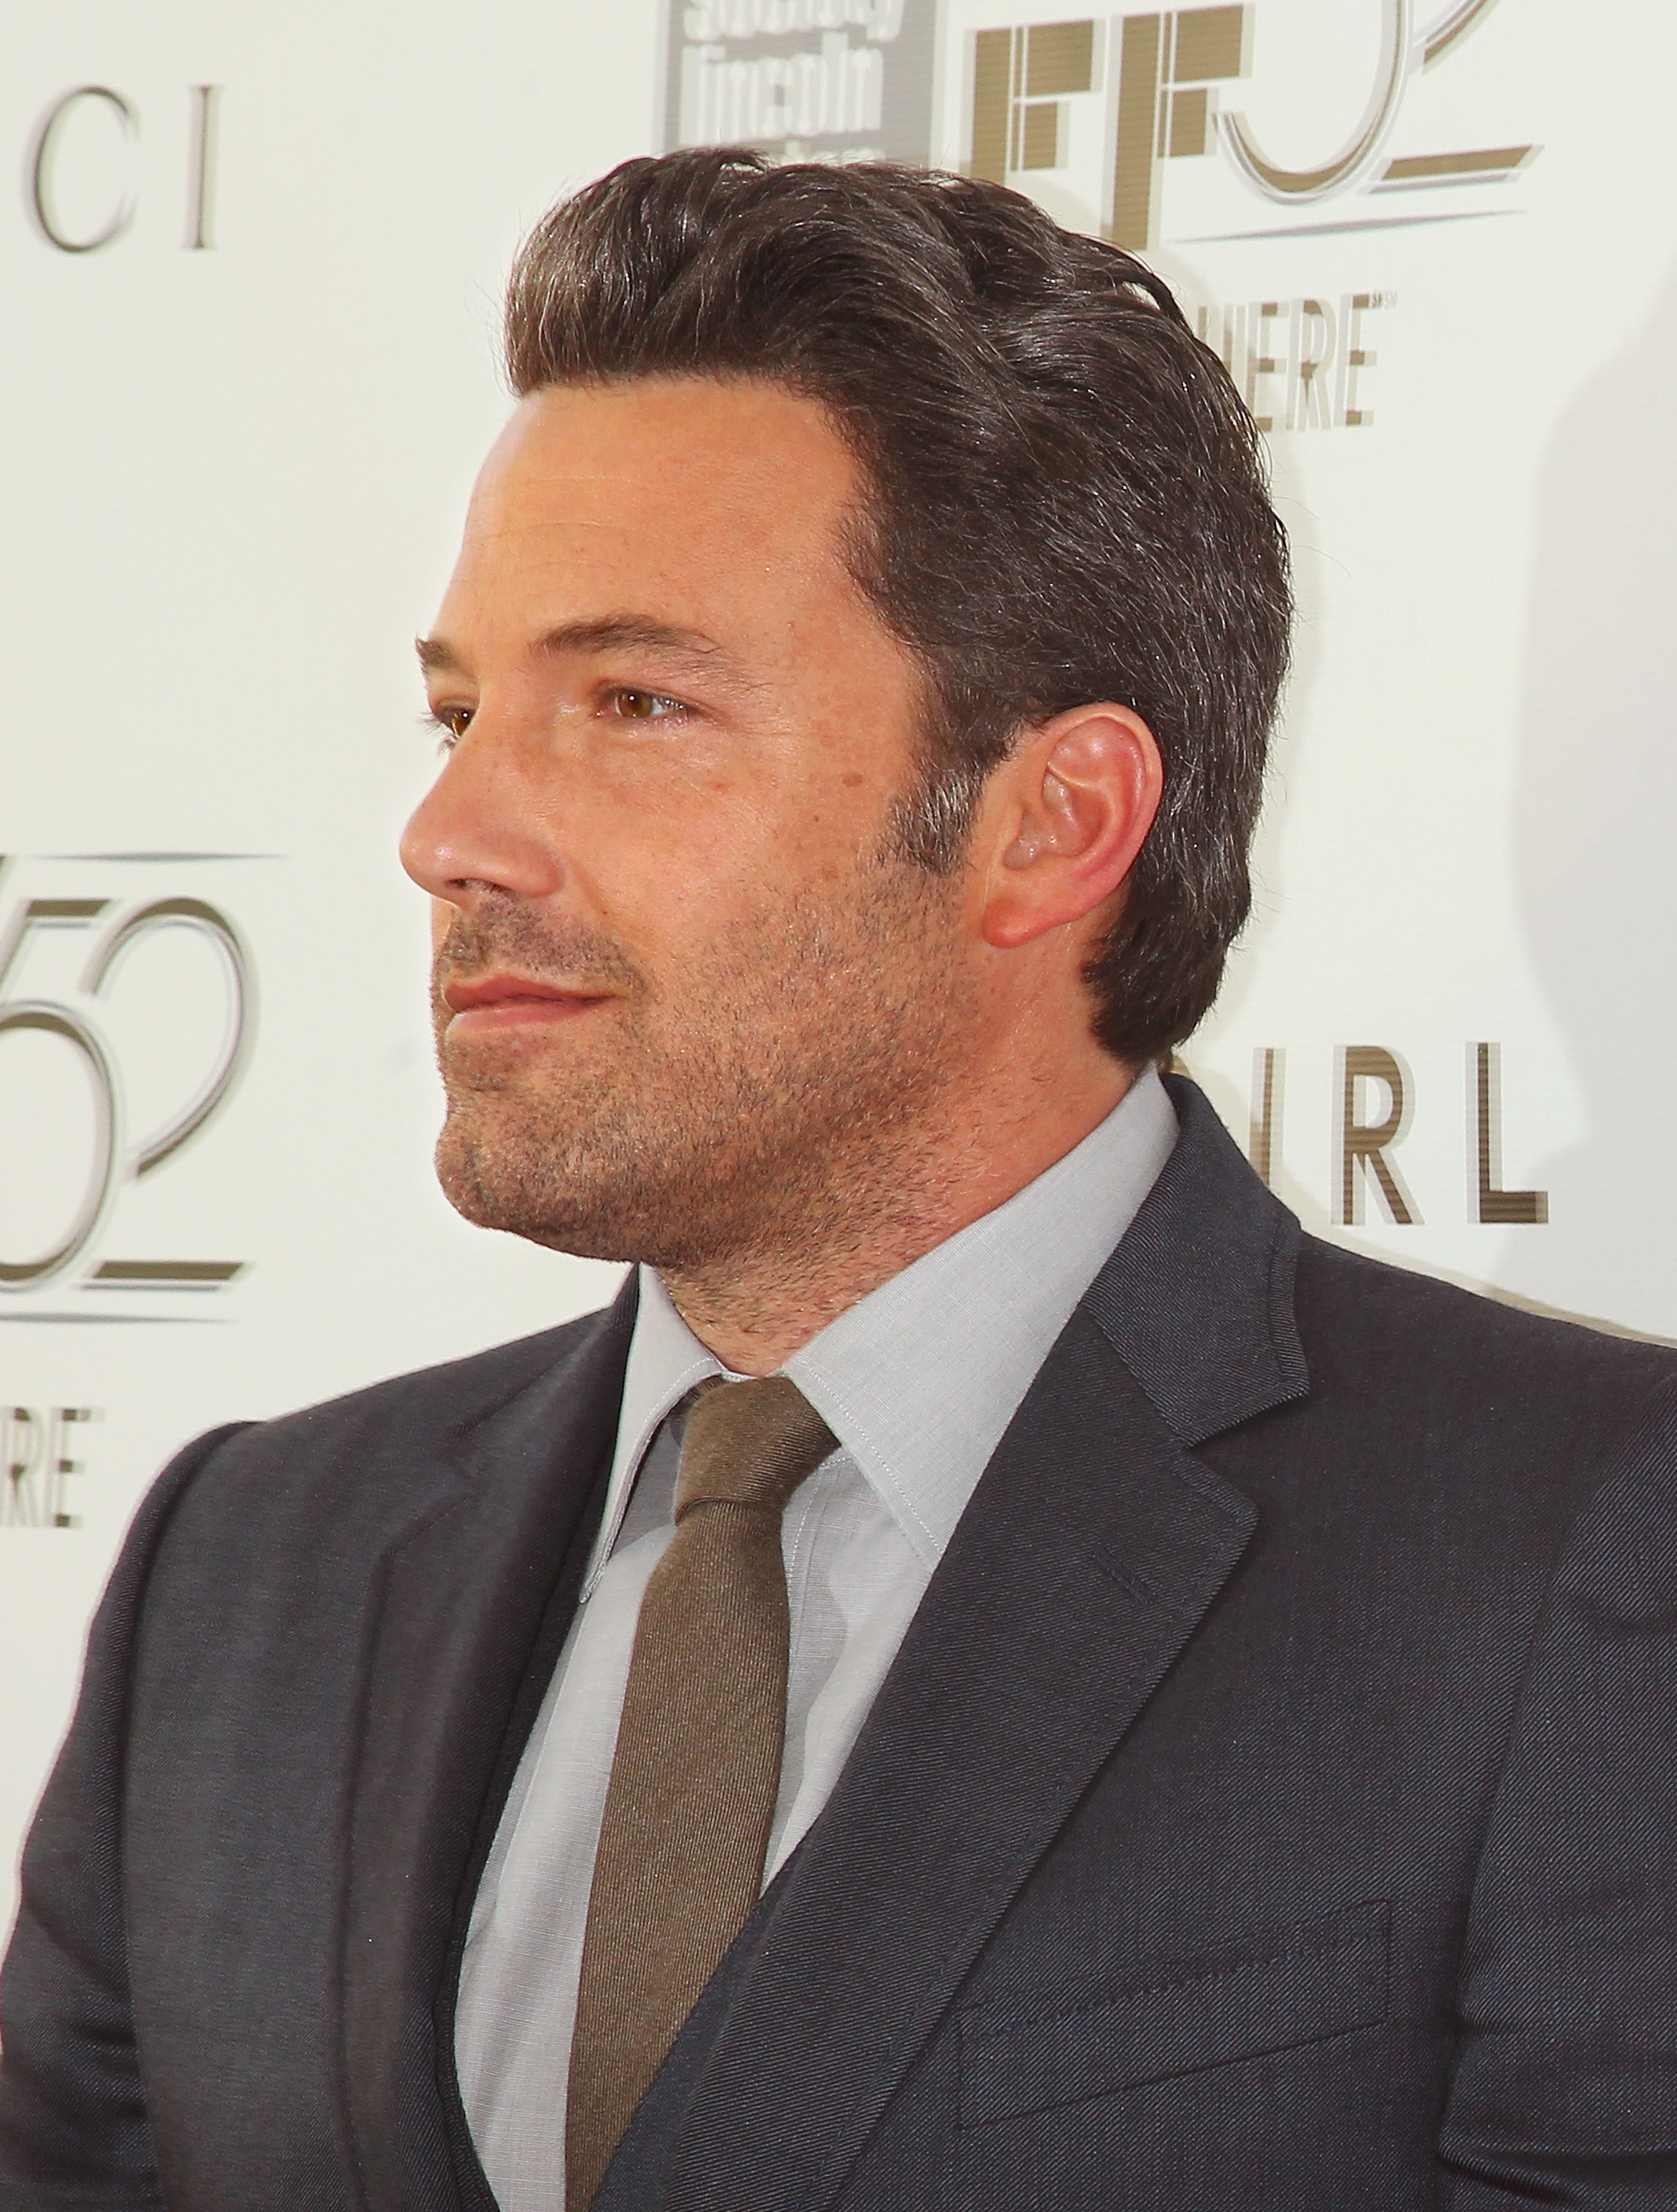 Actor/director Ben Affleck attends the 52nd New York Film Festival Opening Night Gala Presentation and World Premiere Of  Gone Girl  at Alice Tully Hall on September 26, 2014 in New York City.